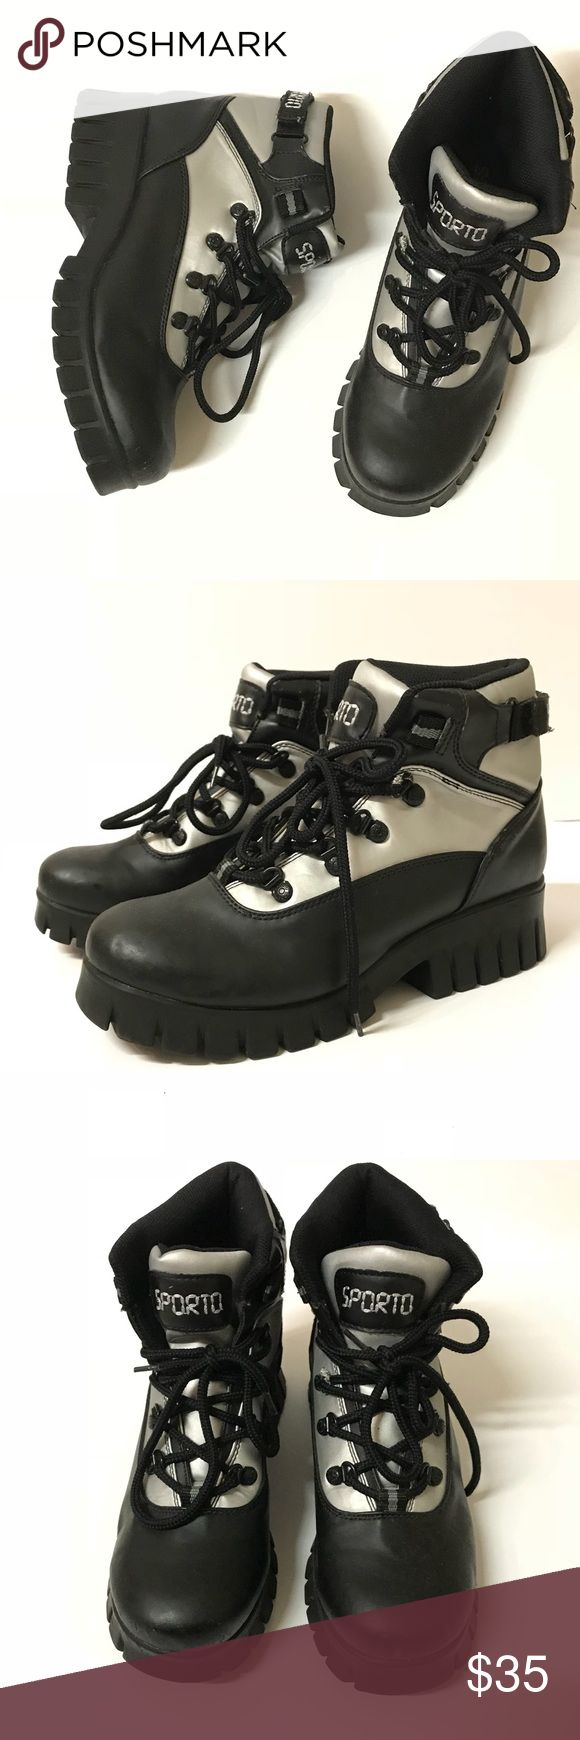 Sporto Boots Women's Sporto black boots with silver reflective material on the top half. Size 9. Shows some wear (see up close photo) but overall great condition! Sporto Shoes Combat & Moto Boots